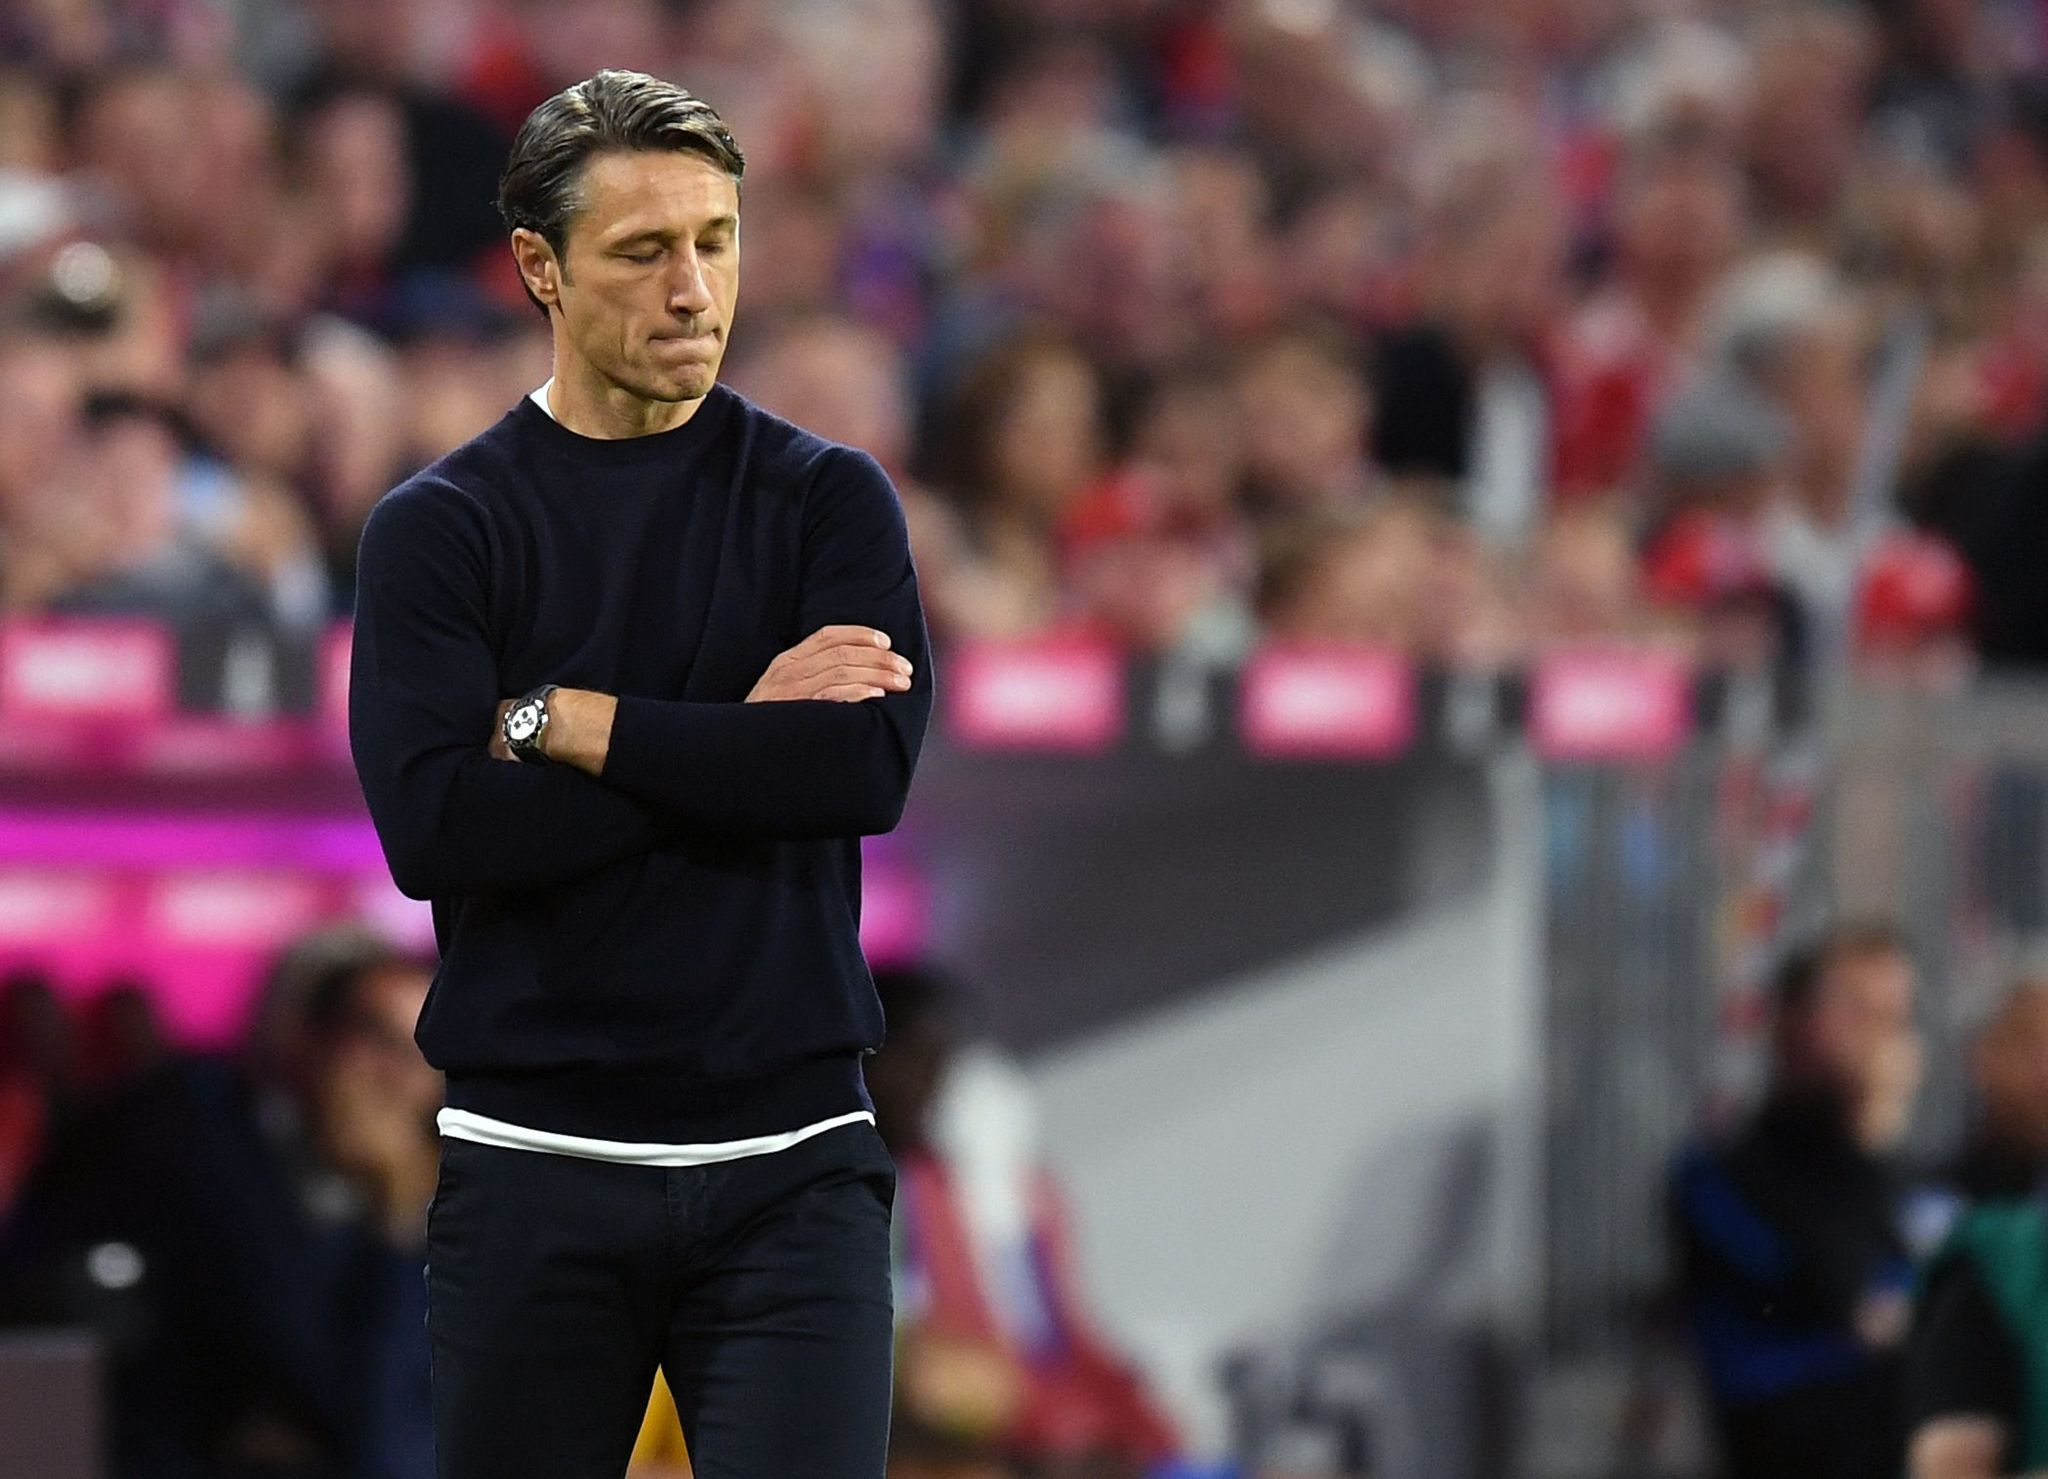 <HIT>Bayern</HIT> Munichs Croatian headcoach Niko Kovac reacts during the German First division Bundesliga football match FC <HIT>Bayern</HIT> Munich v Hertha Berlin in Munich, southern Germany, on August 16, 2019. (Photo by Christof STACHE / AFP) / DFL REGULATIONS PROHIBIT ANY USE OF PHOTOGRAPHS AS IMAGE SEQUENCES AND/OR QUASI-VIDEO